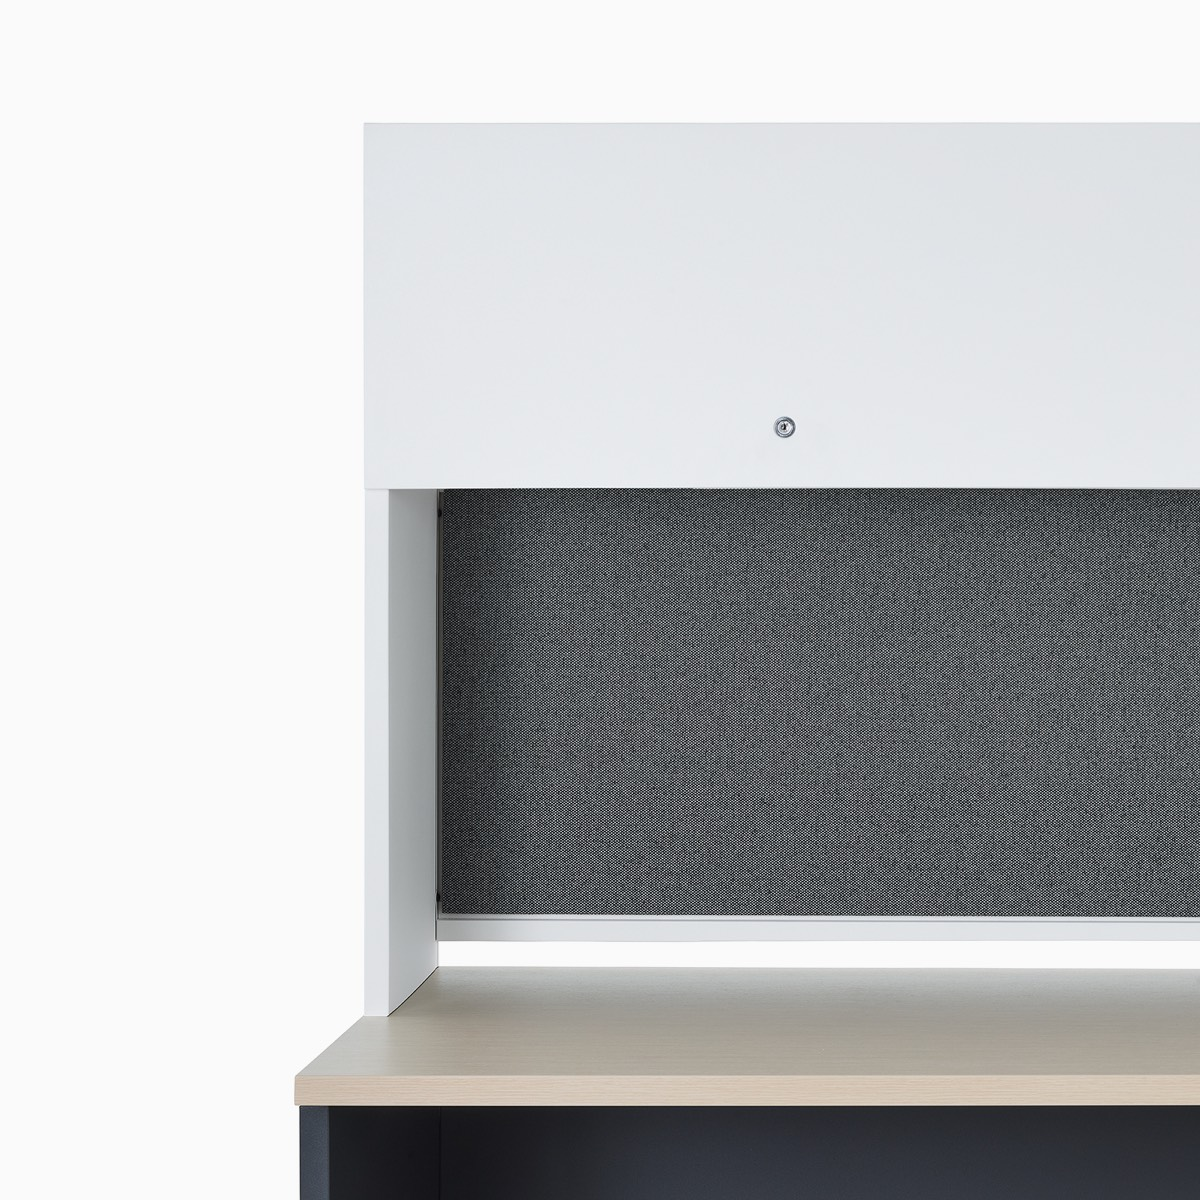 A close-up of a Canvas Metal Desk flipper overhead storage.